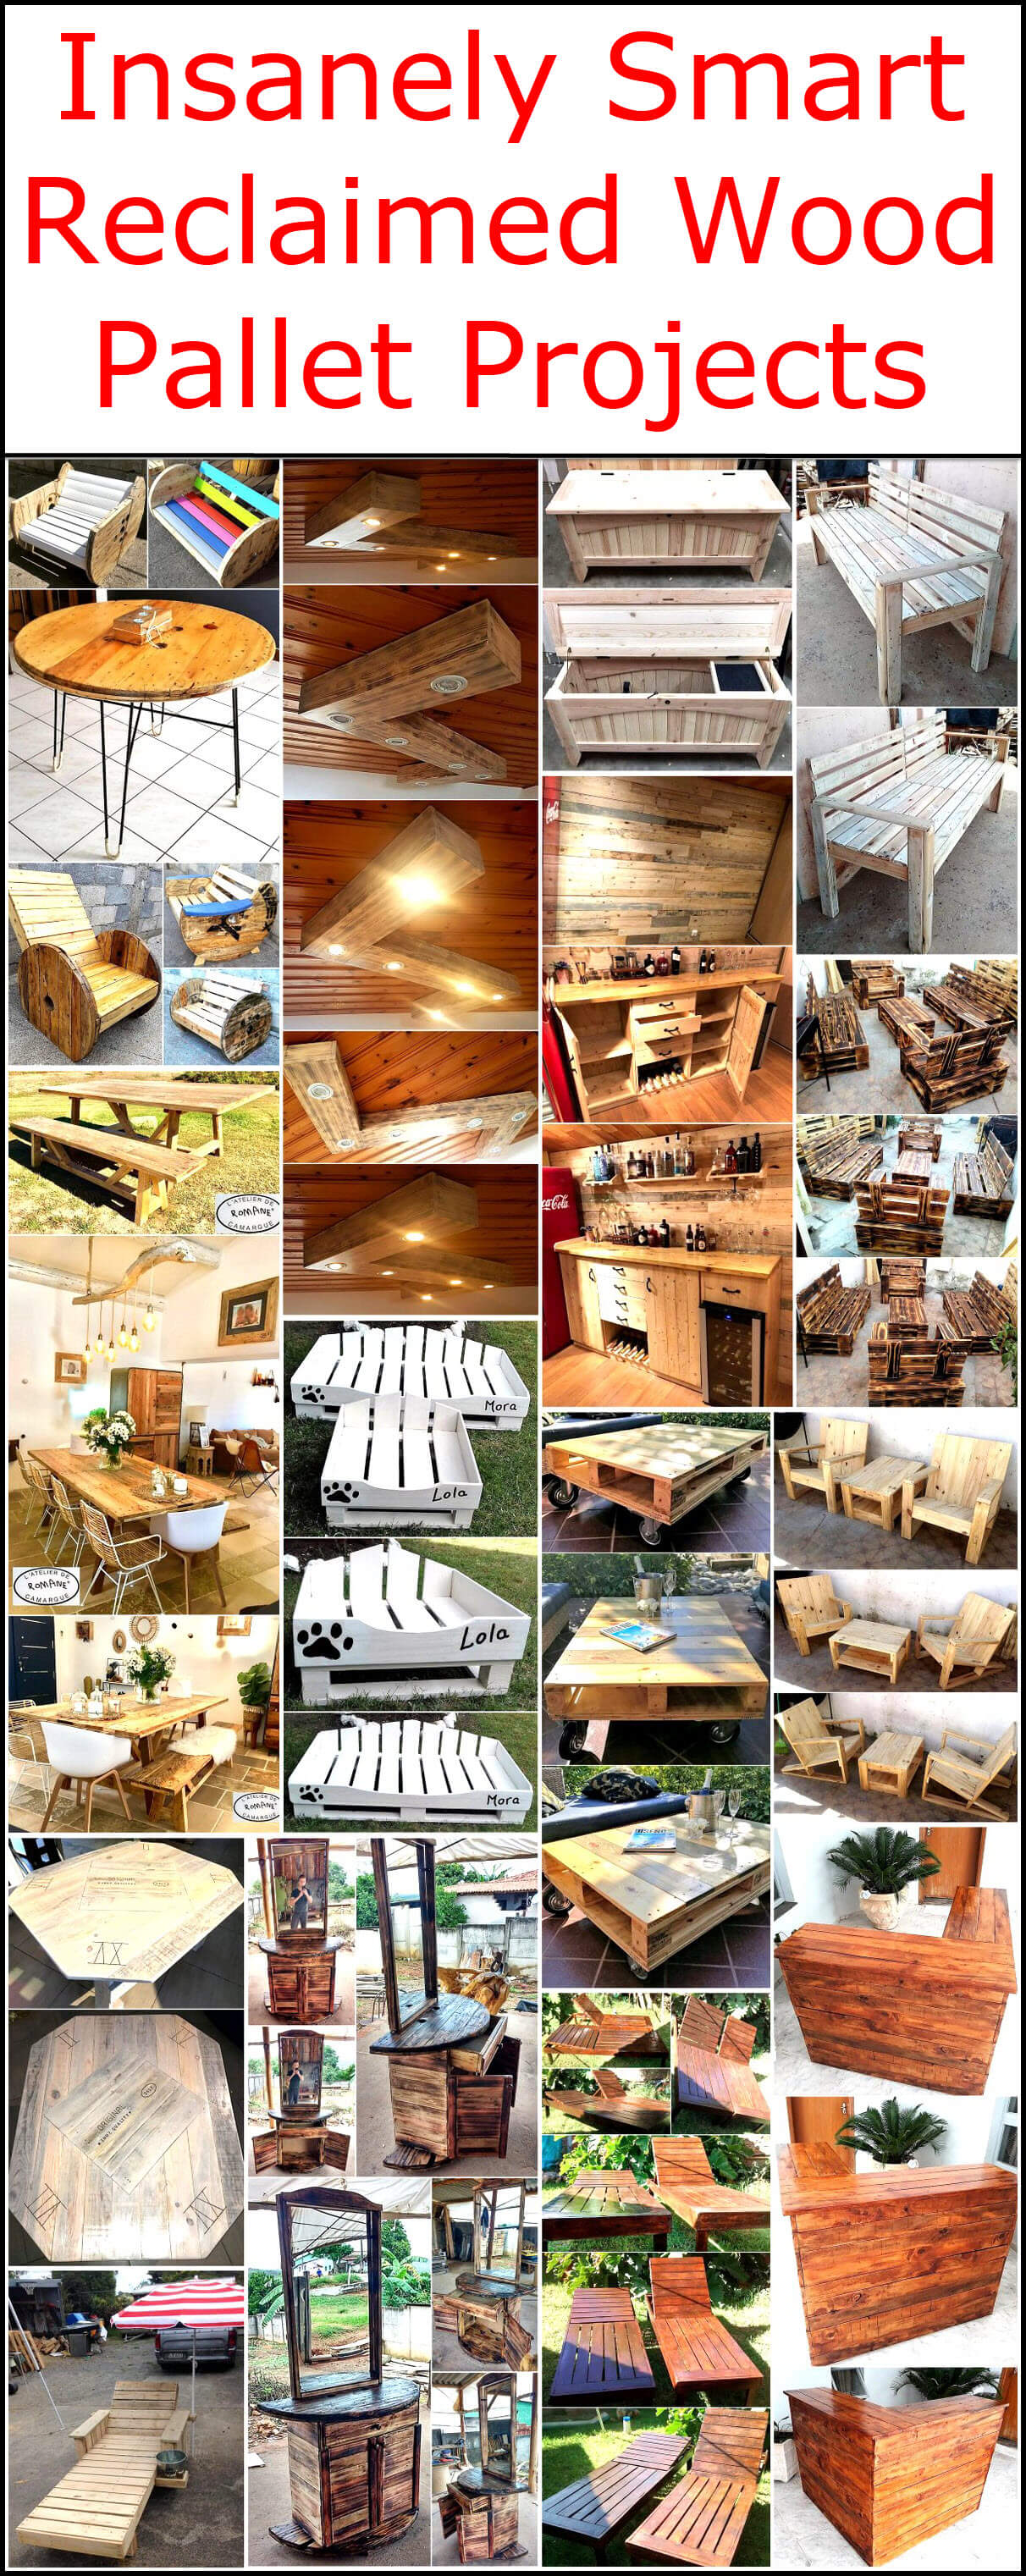 Insanely Smart Reclaimed Wood Pallet Projects